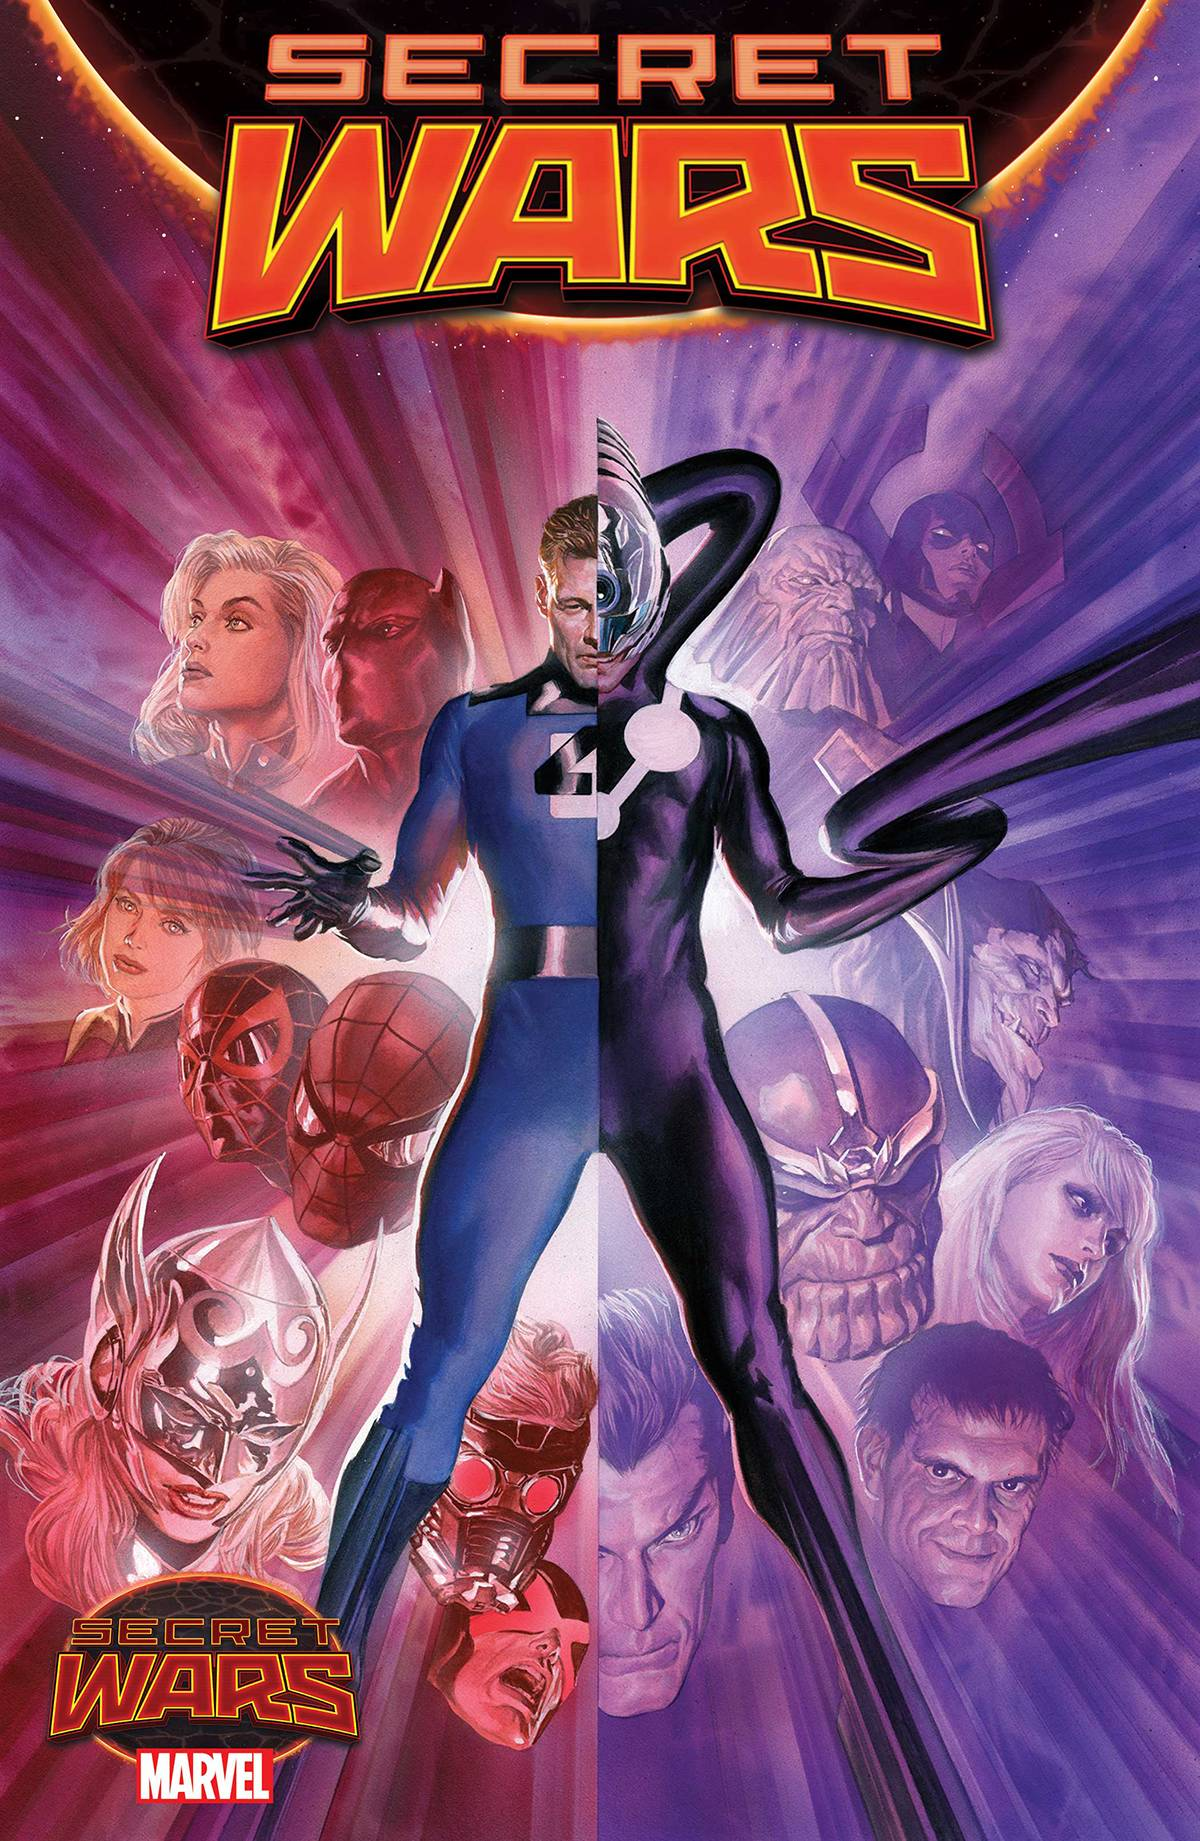 COMIC REVIEW: Secret Wars #3 - The Eye Of Doom